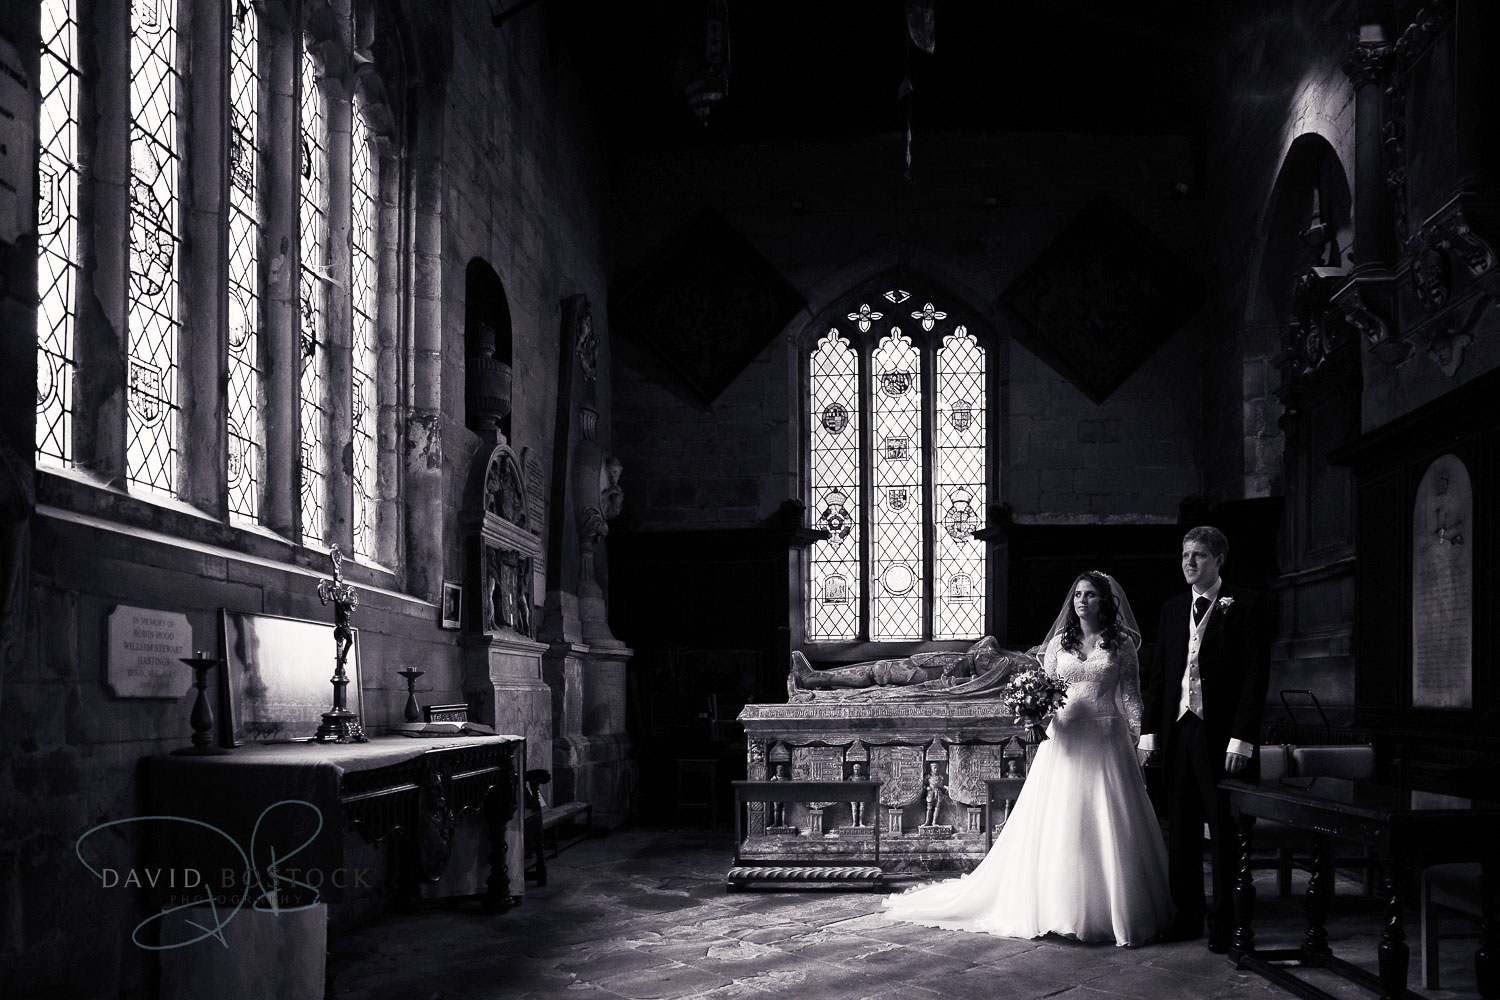 bride and groom in church in black and white